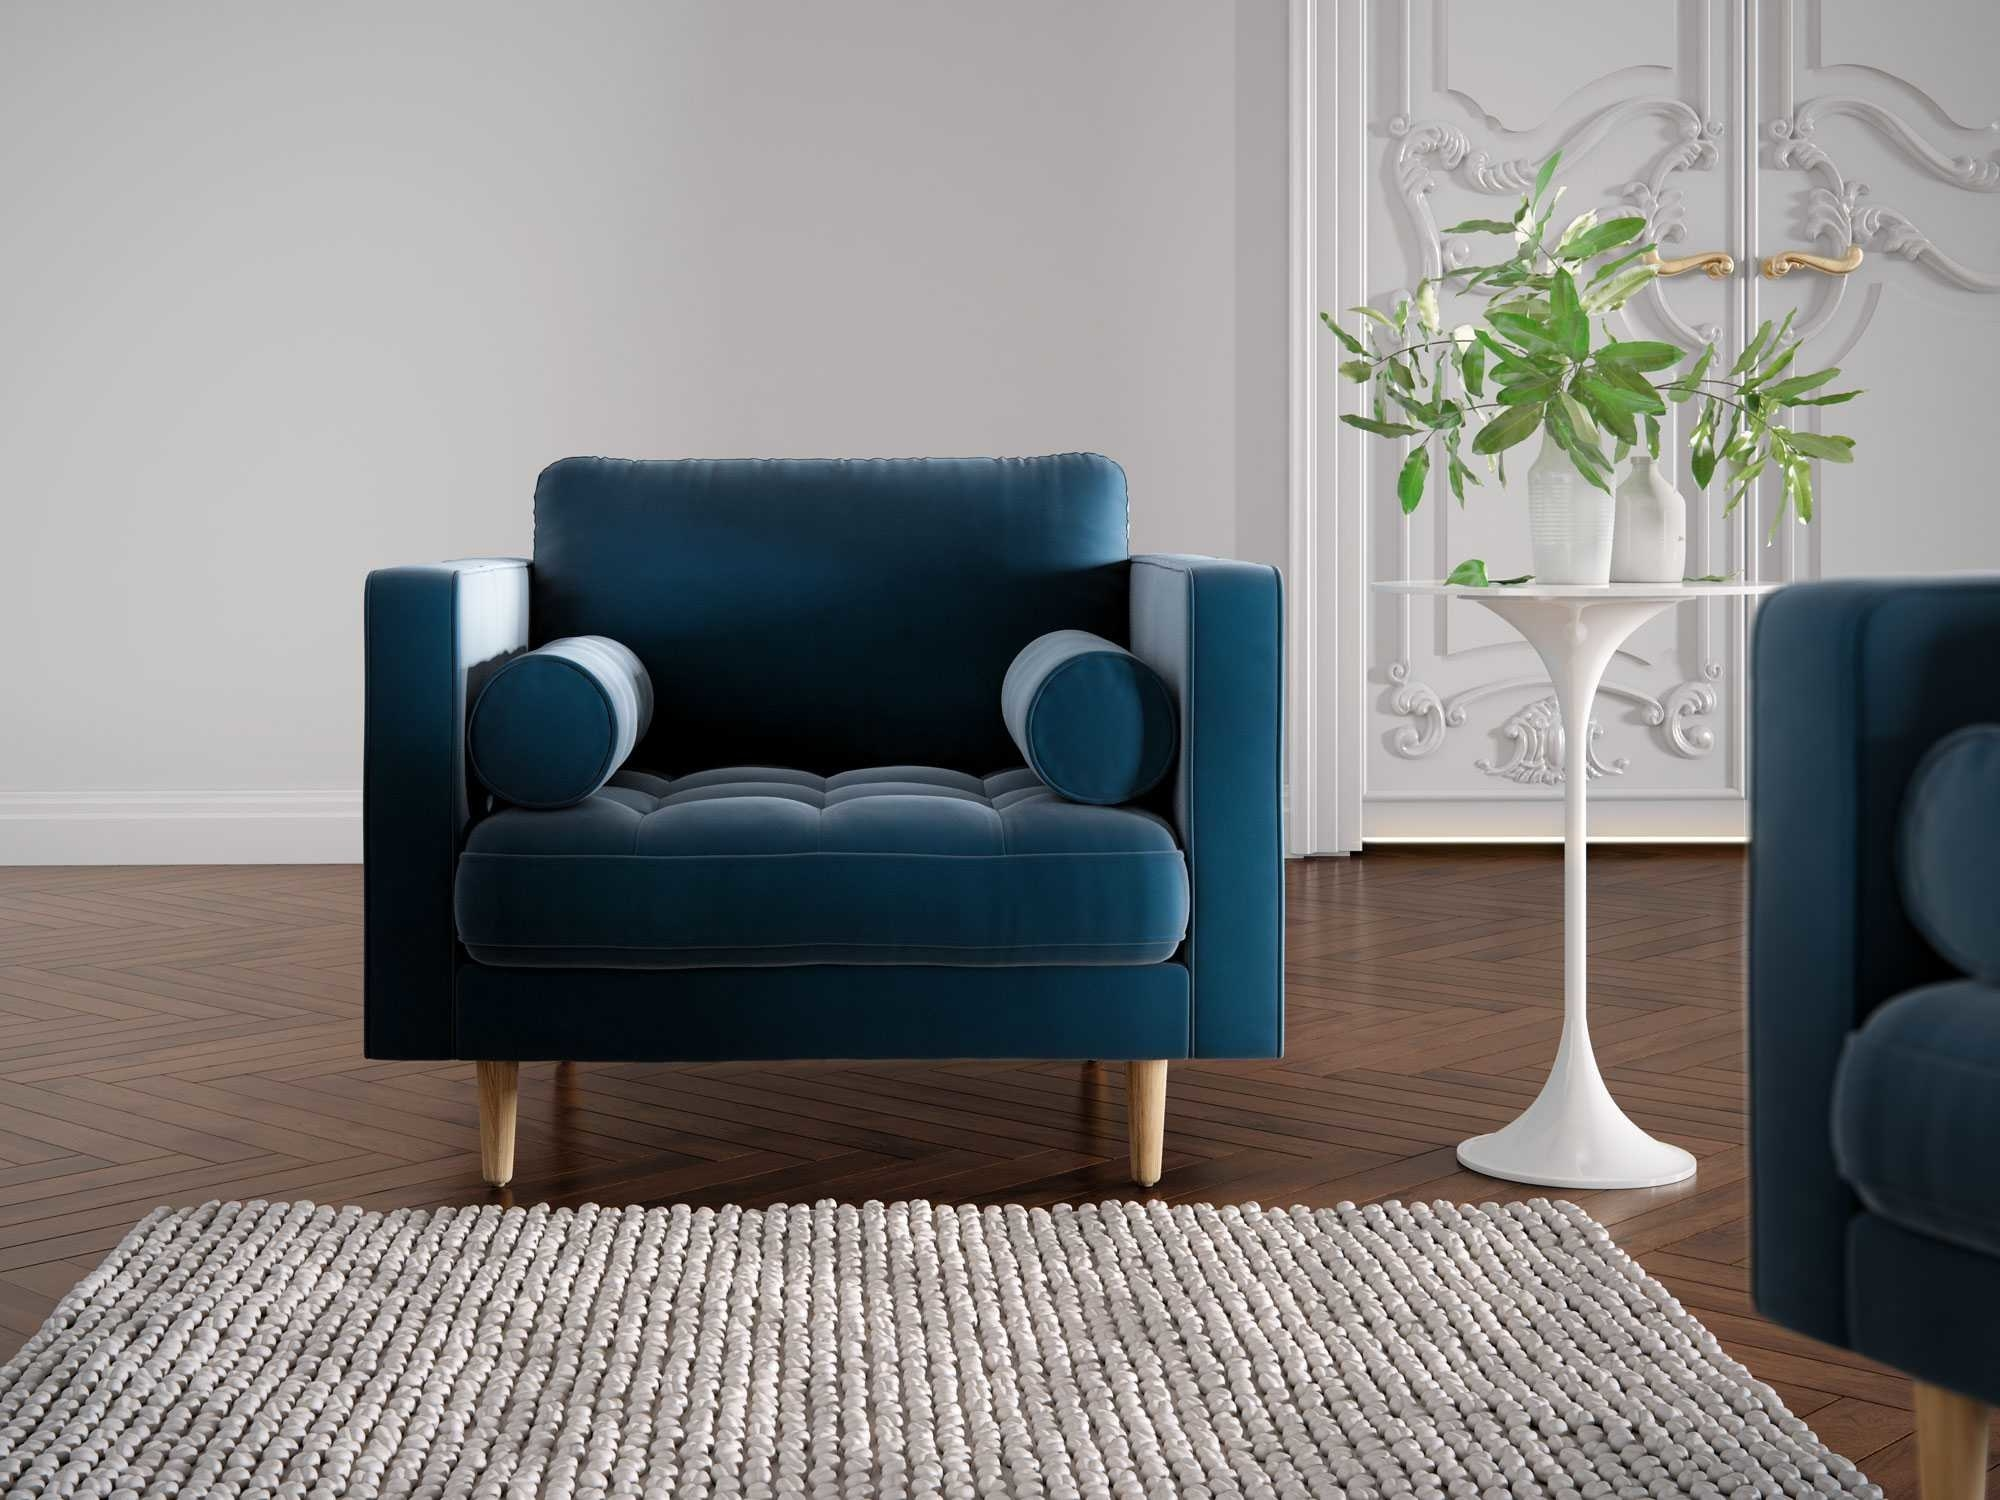 the chair in blue